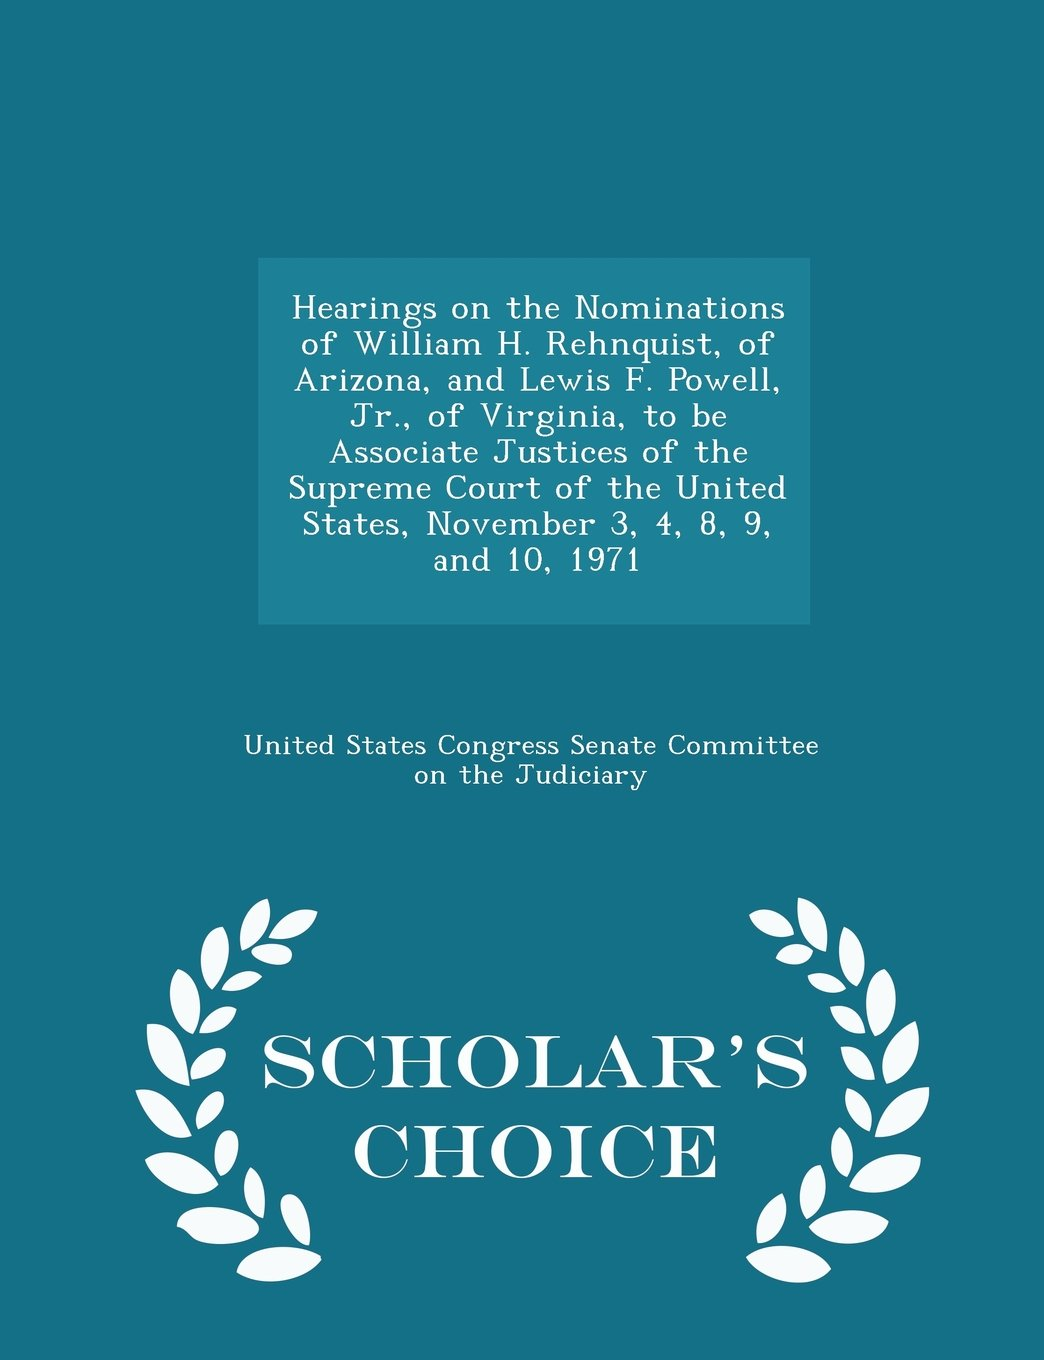 Download Hearings on the Nominations of William H. Rehnquist, of Arizona, and Lewis F. Powell, Jr., of Virginia, to be Associate Justices of the Supreme Court ... 8, 9, and 10, 1971 - Scholar's Choice Edition pdf epub